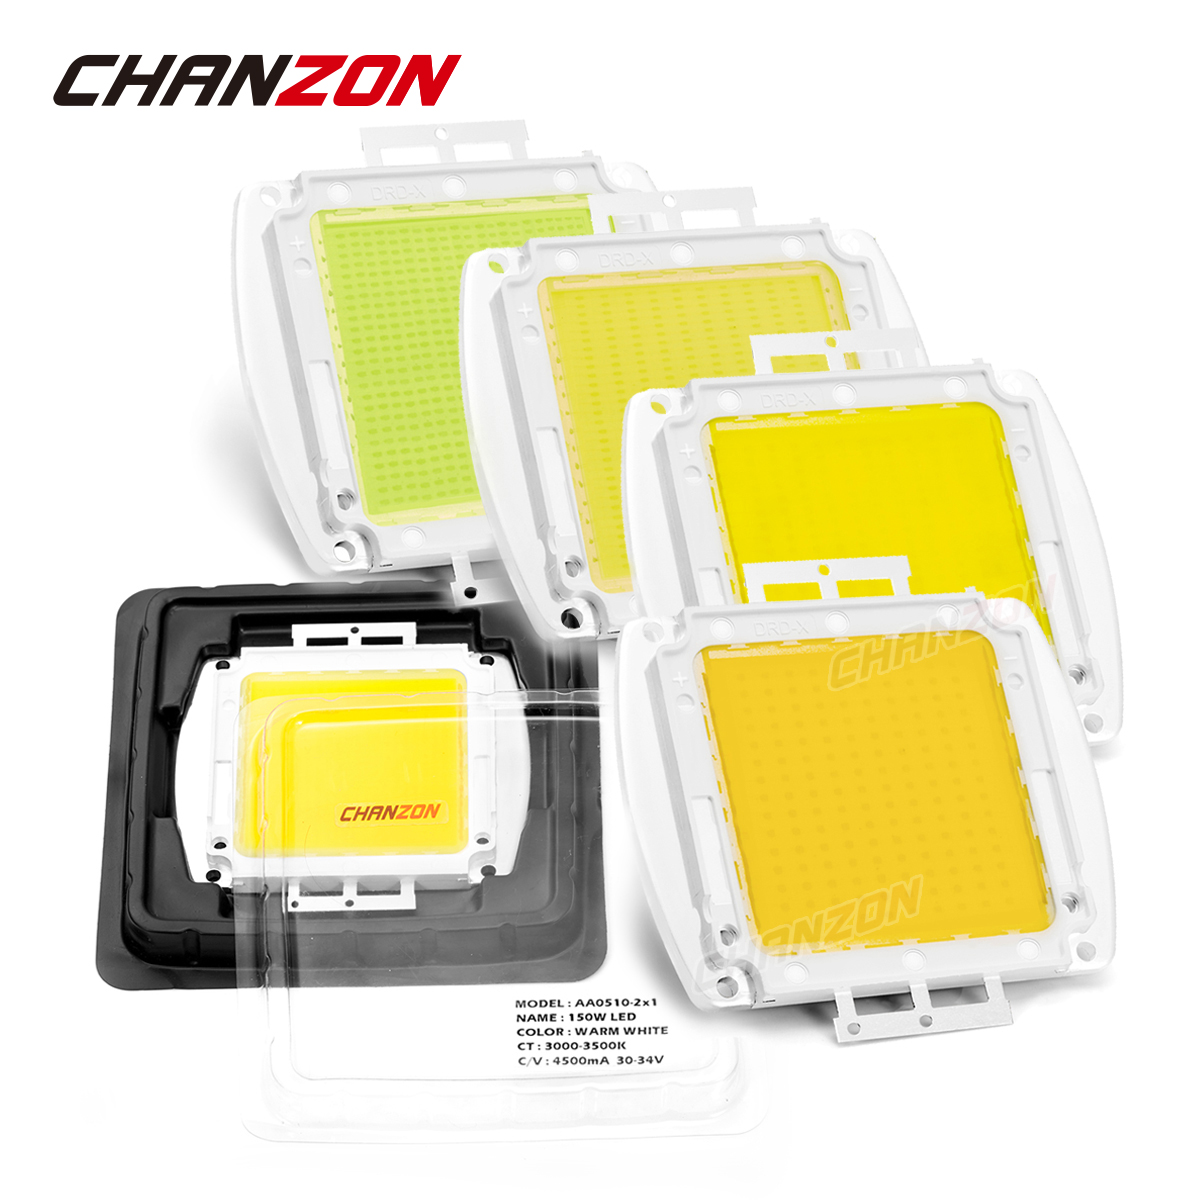 CHANZON High Power LED SMD COB Bulb Chip 150W 200W 300W 500W Natural Cool Warm White 150 200 300 500 W Watt for Outdoor Light high power led chip 1w 3w 5w 10w 20w 30w 50w 100w watt warm pure cool white light bulb matrix lamp smd cob 3000k 6000k 15000k